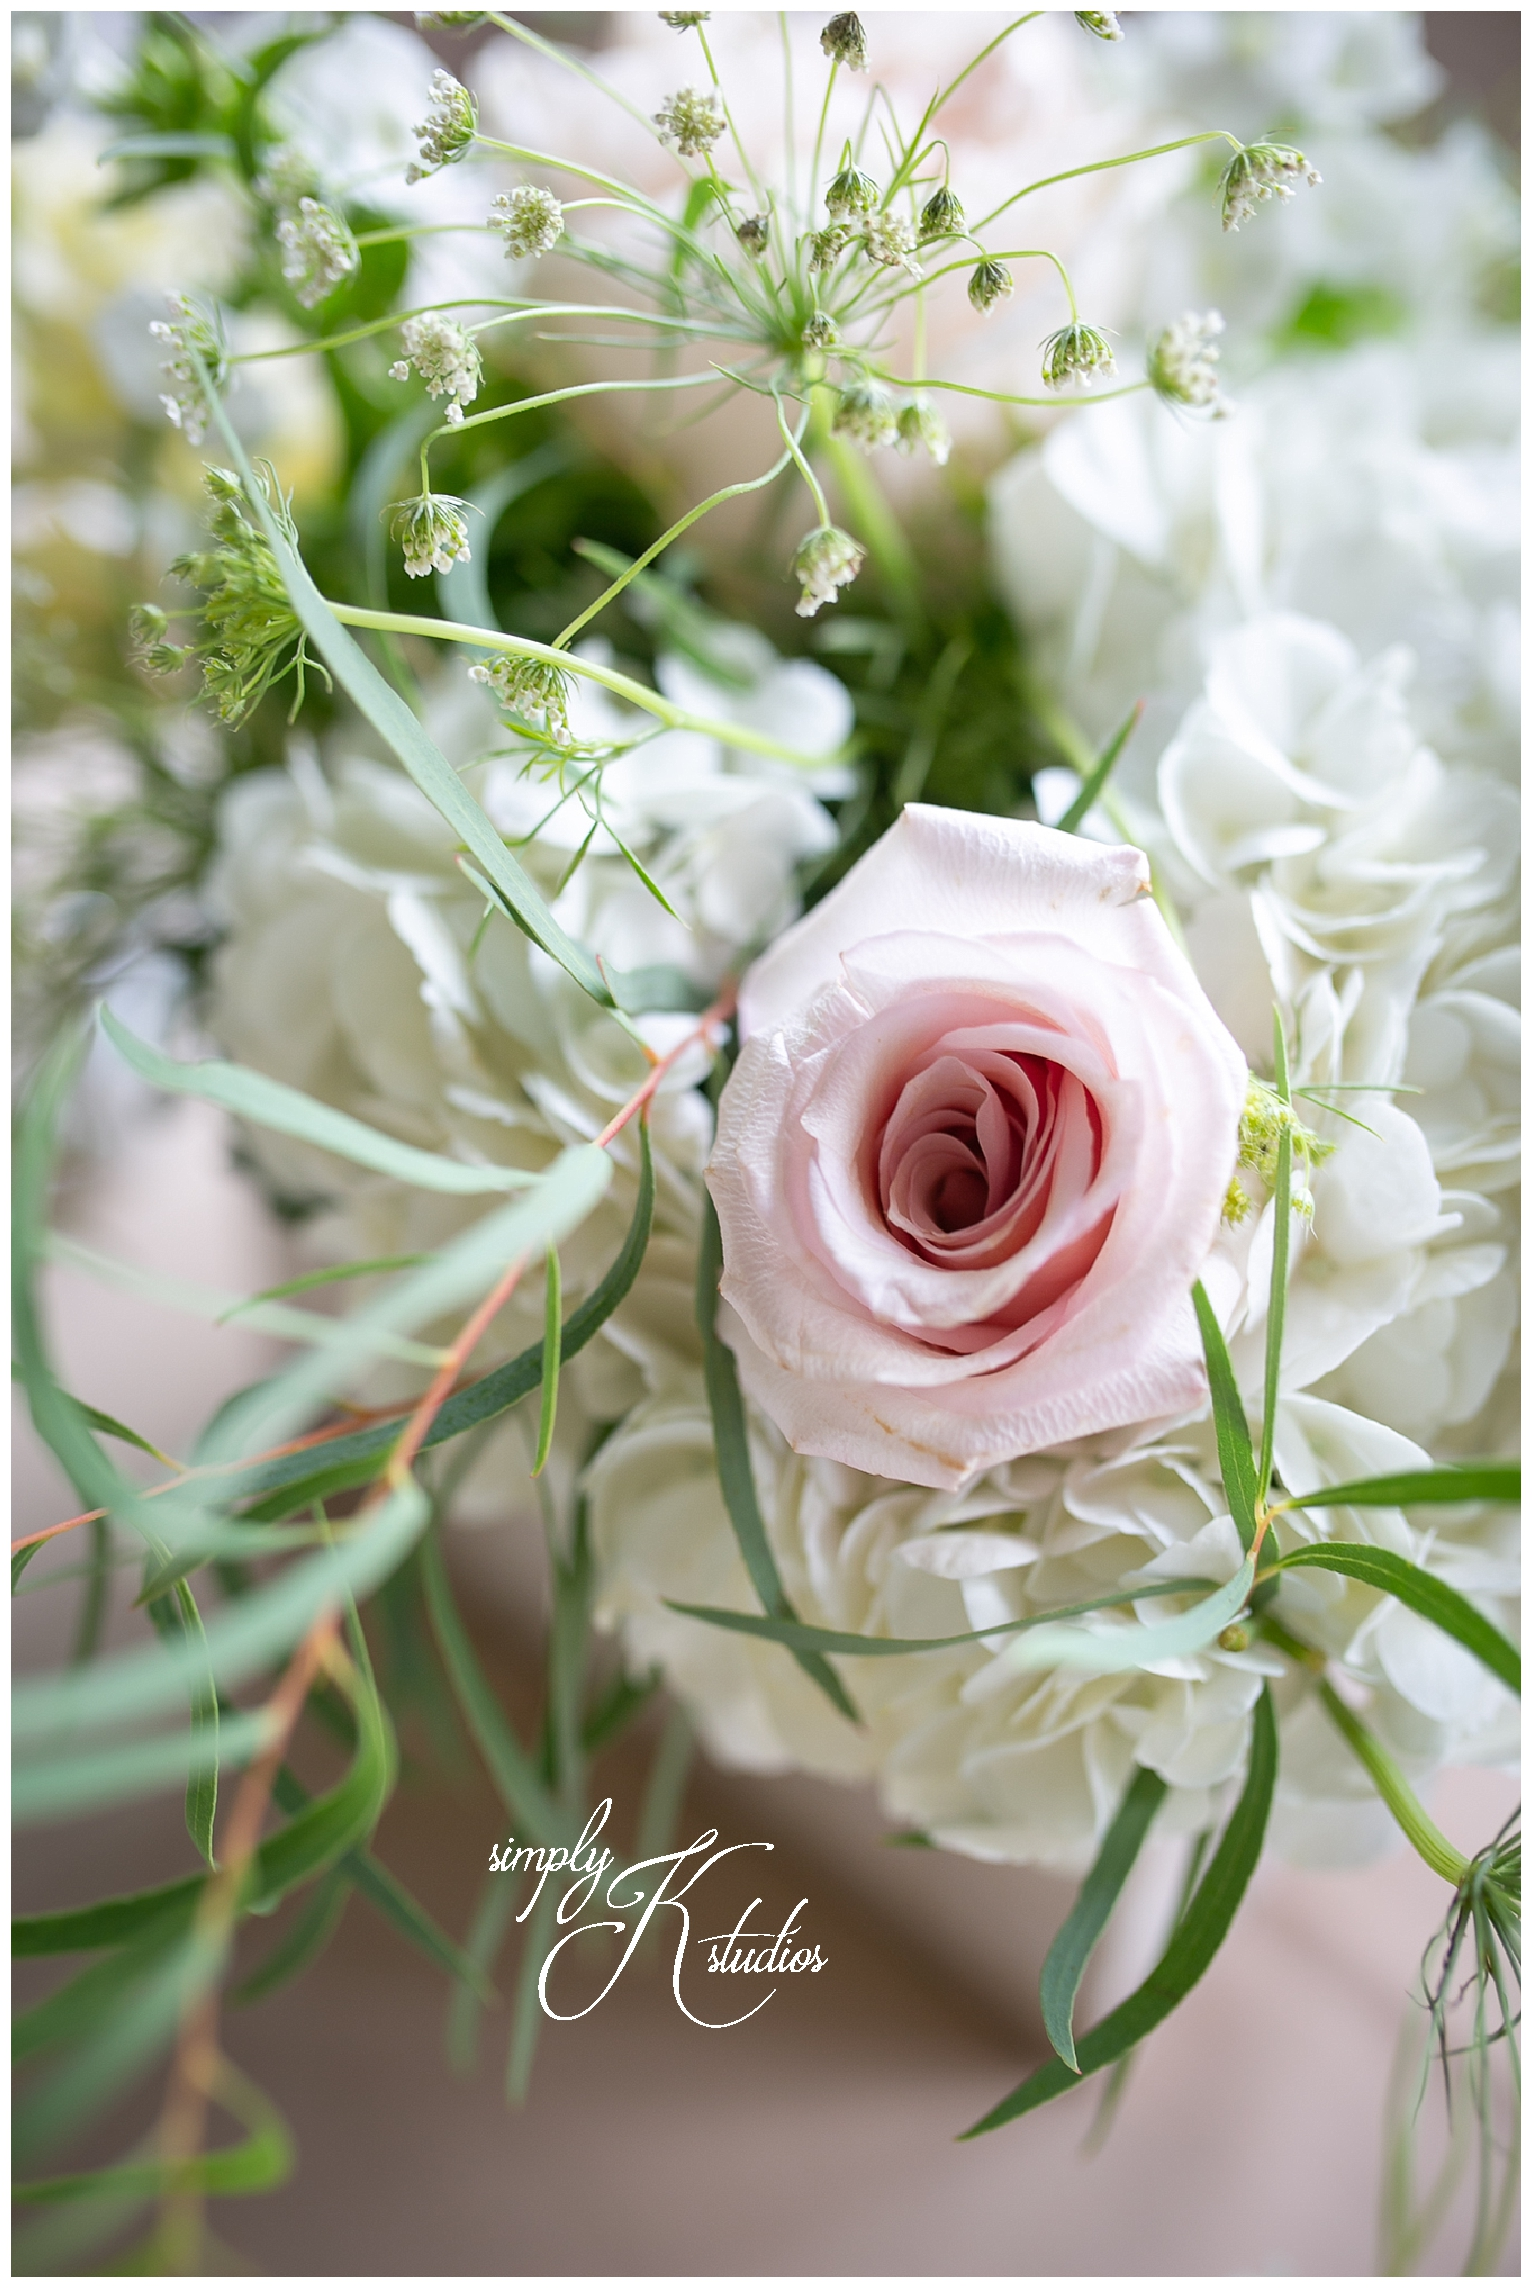 Floral Design by Melissa at The Lace Factory.jpg